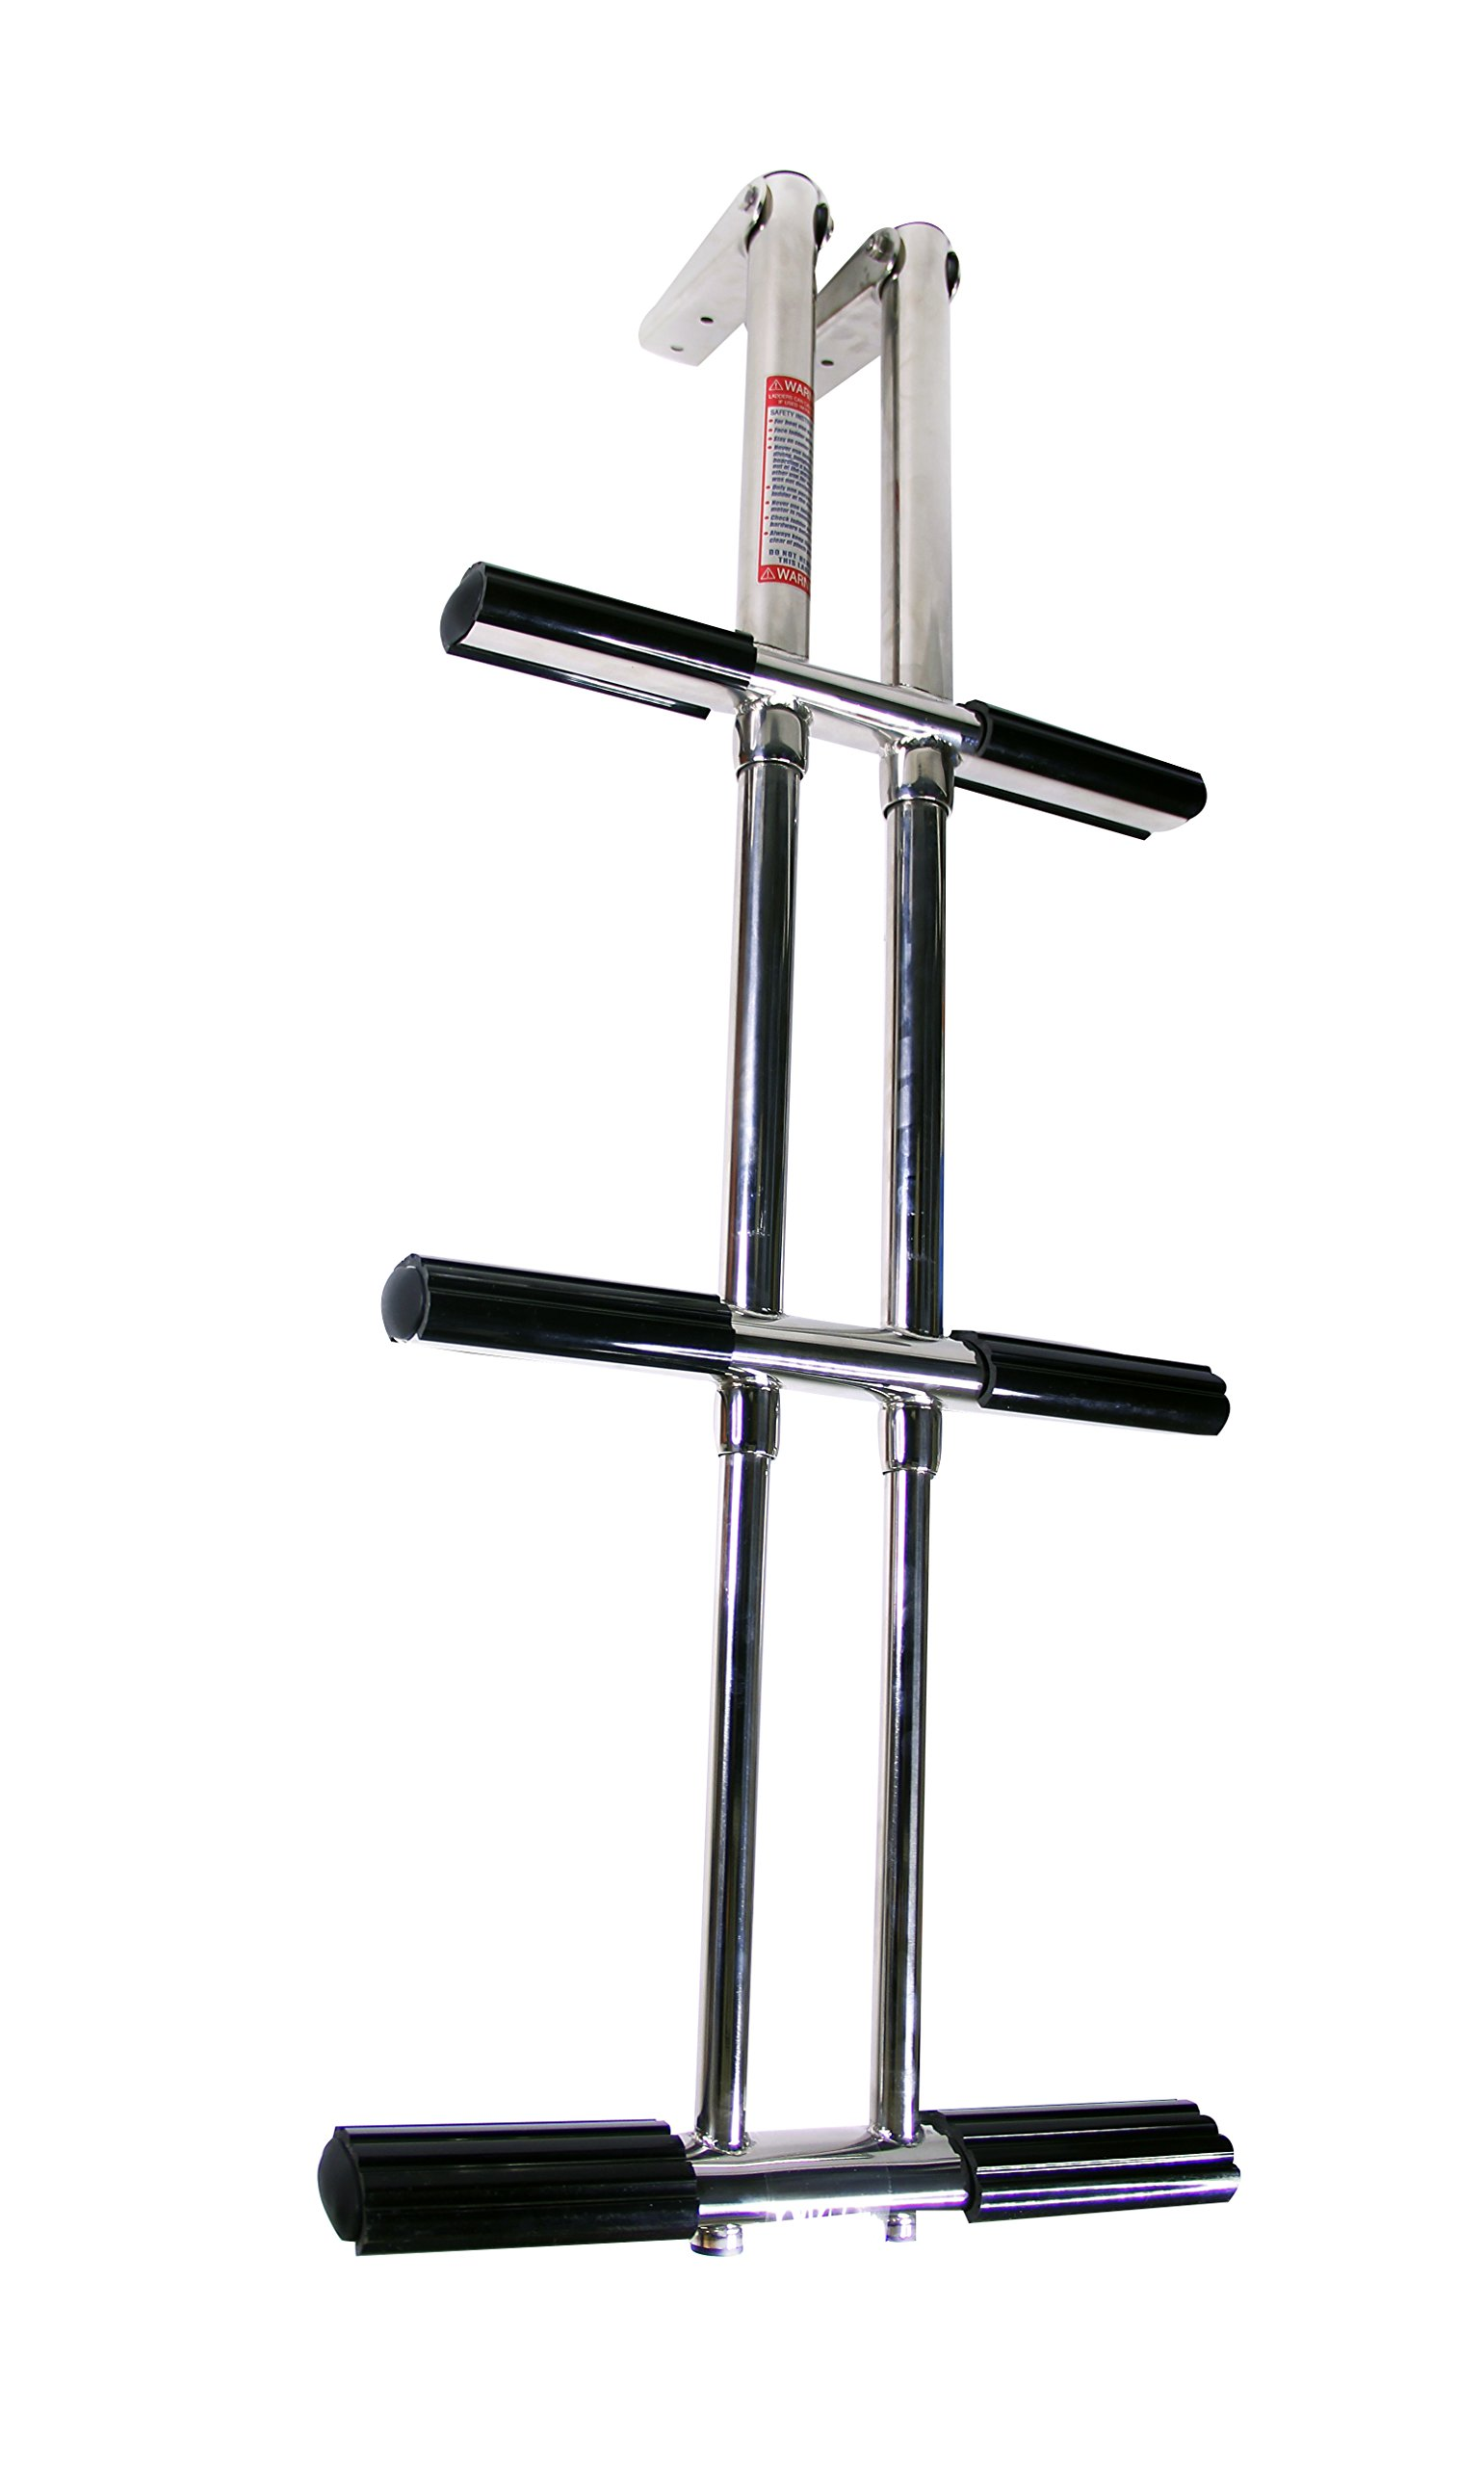 Pactrade Marine Telescopic Boat Dive Ladder, Stainless Steel, 3 Step